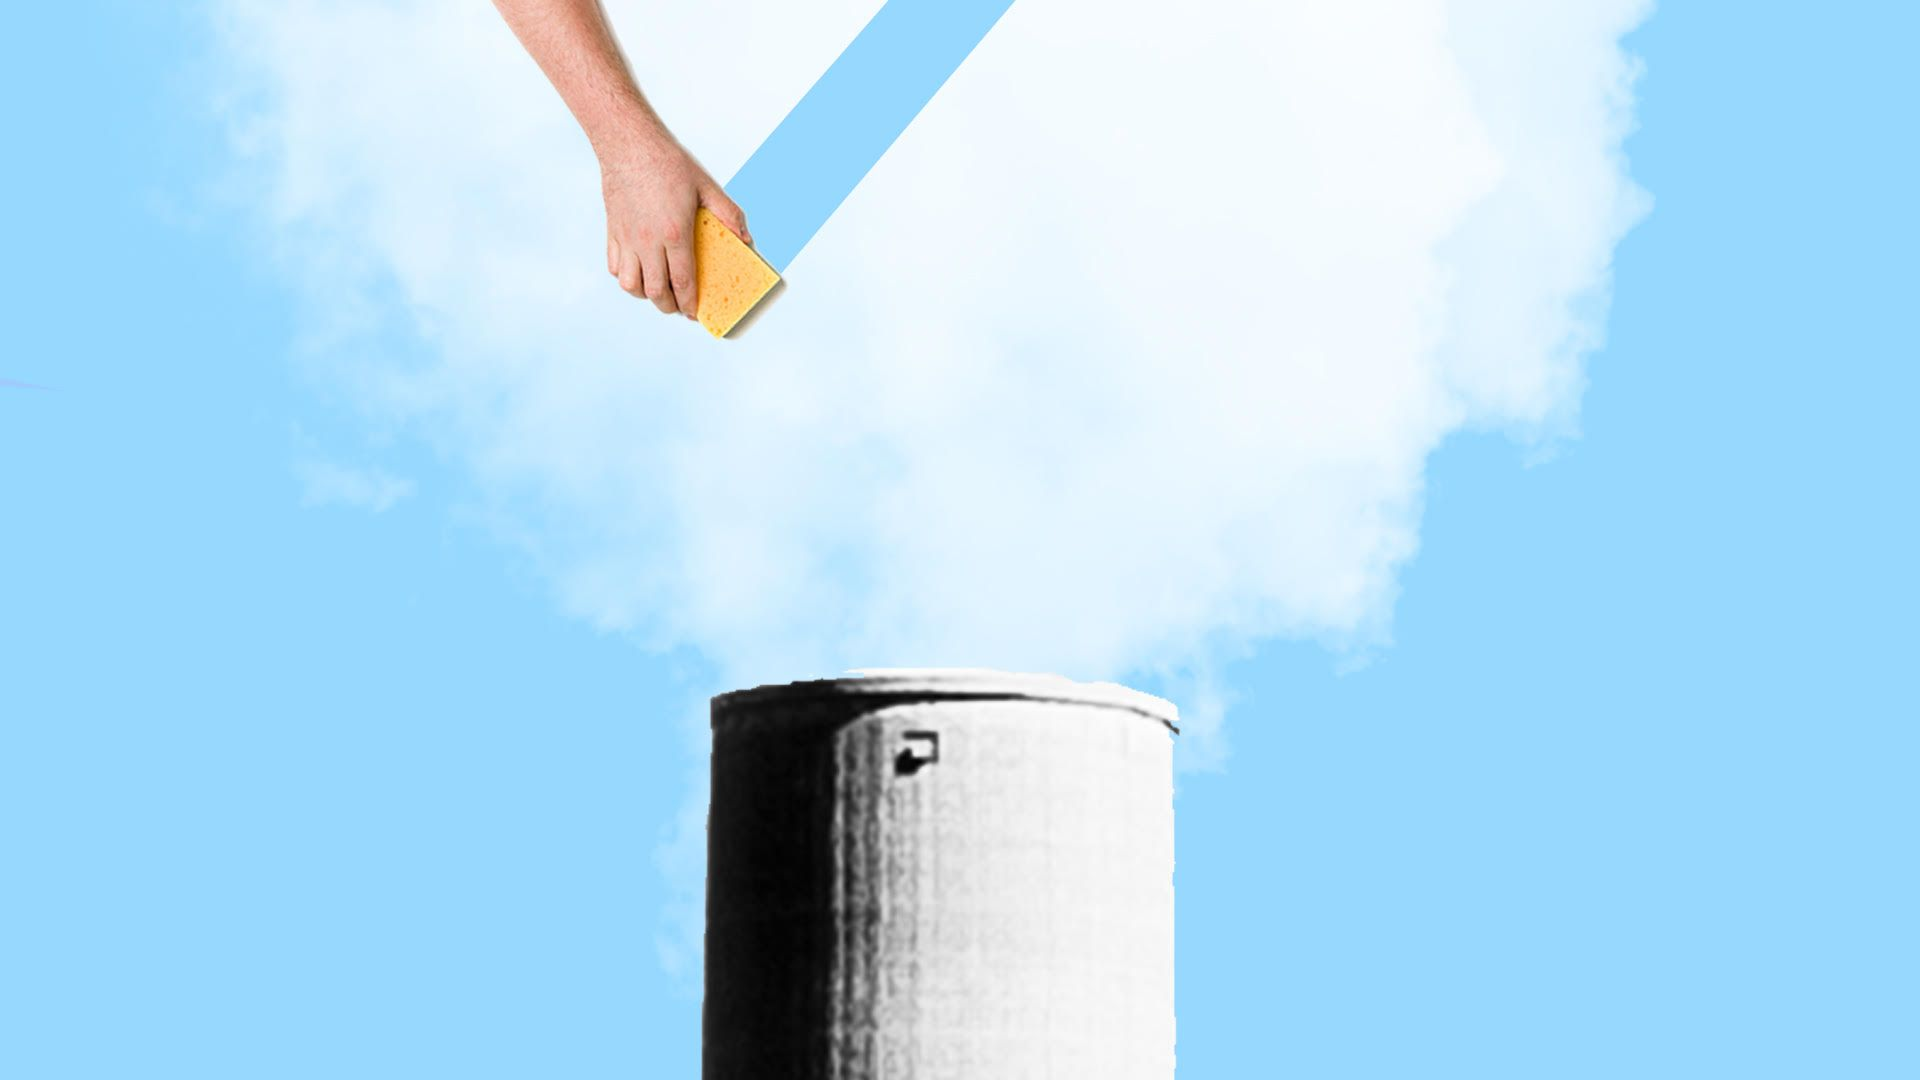 Cleaning a smokestack